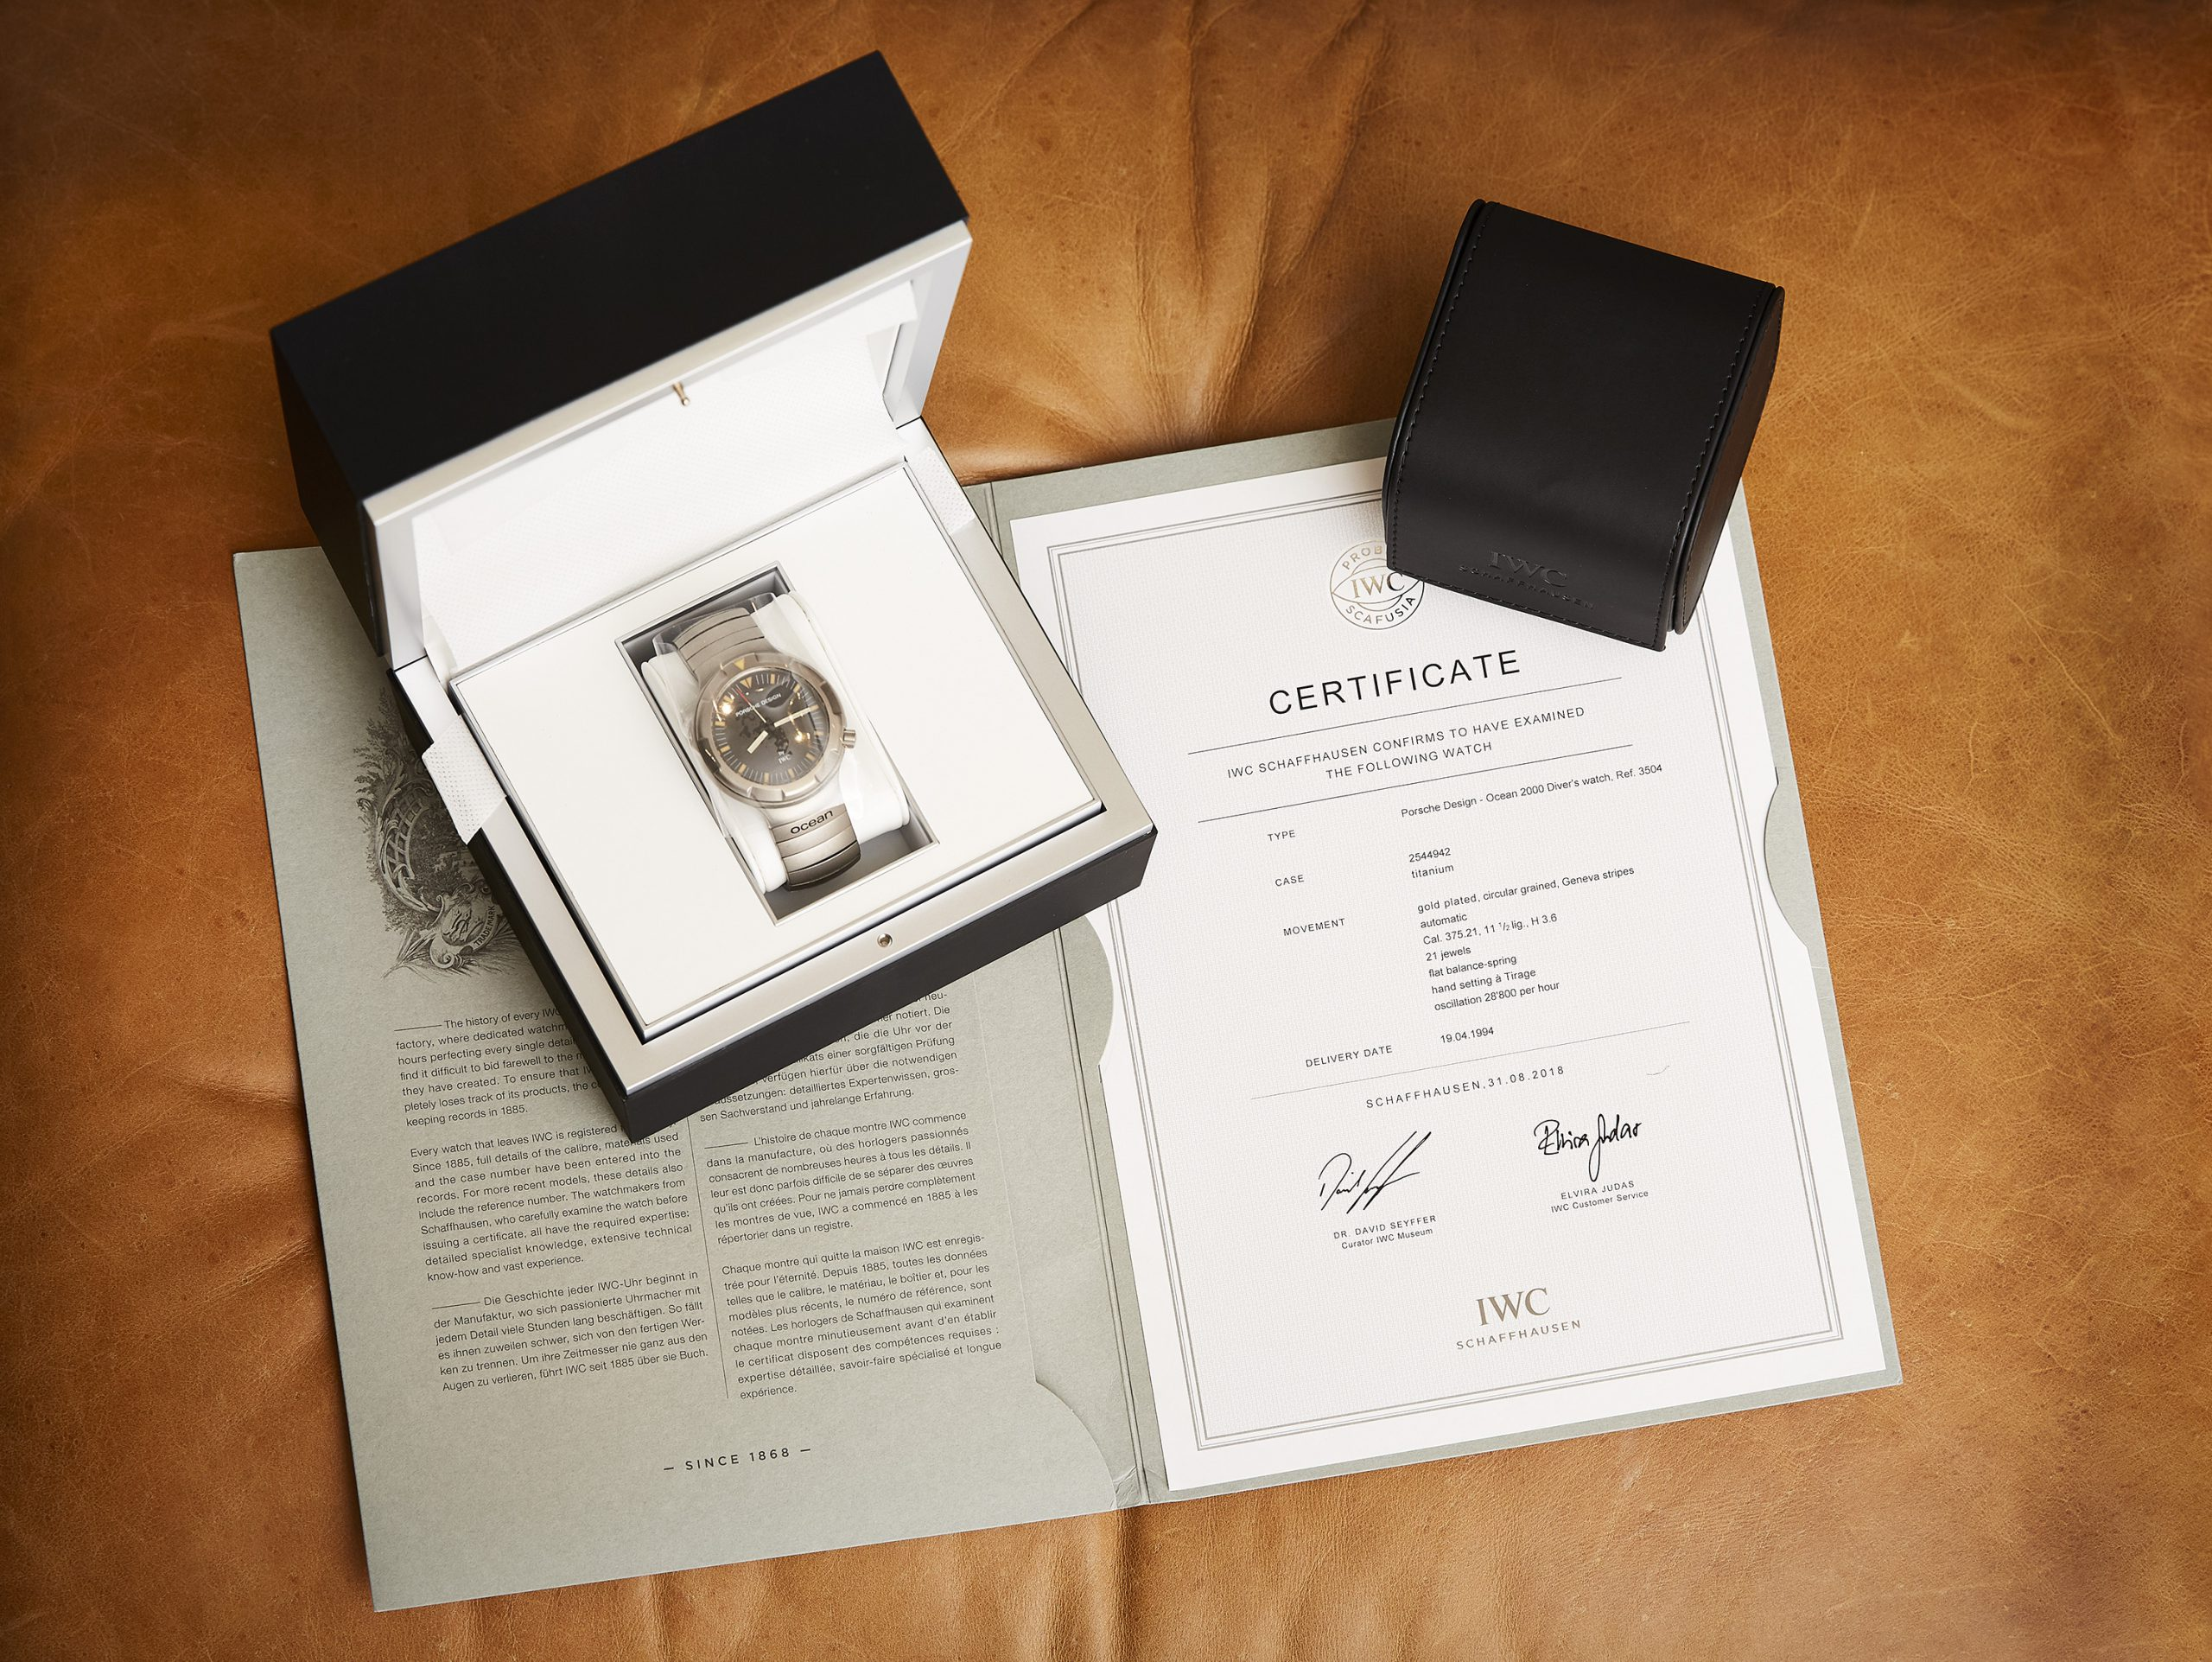 NEWS: We are auctioning a seriously cult-worthy watch for charity, the Porsche Design by IWC Ocean 2000